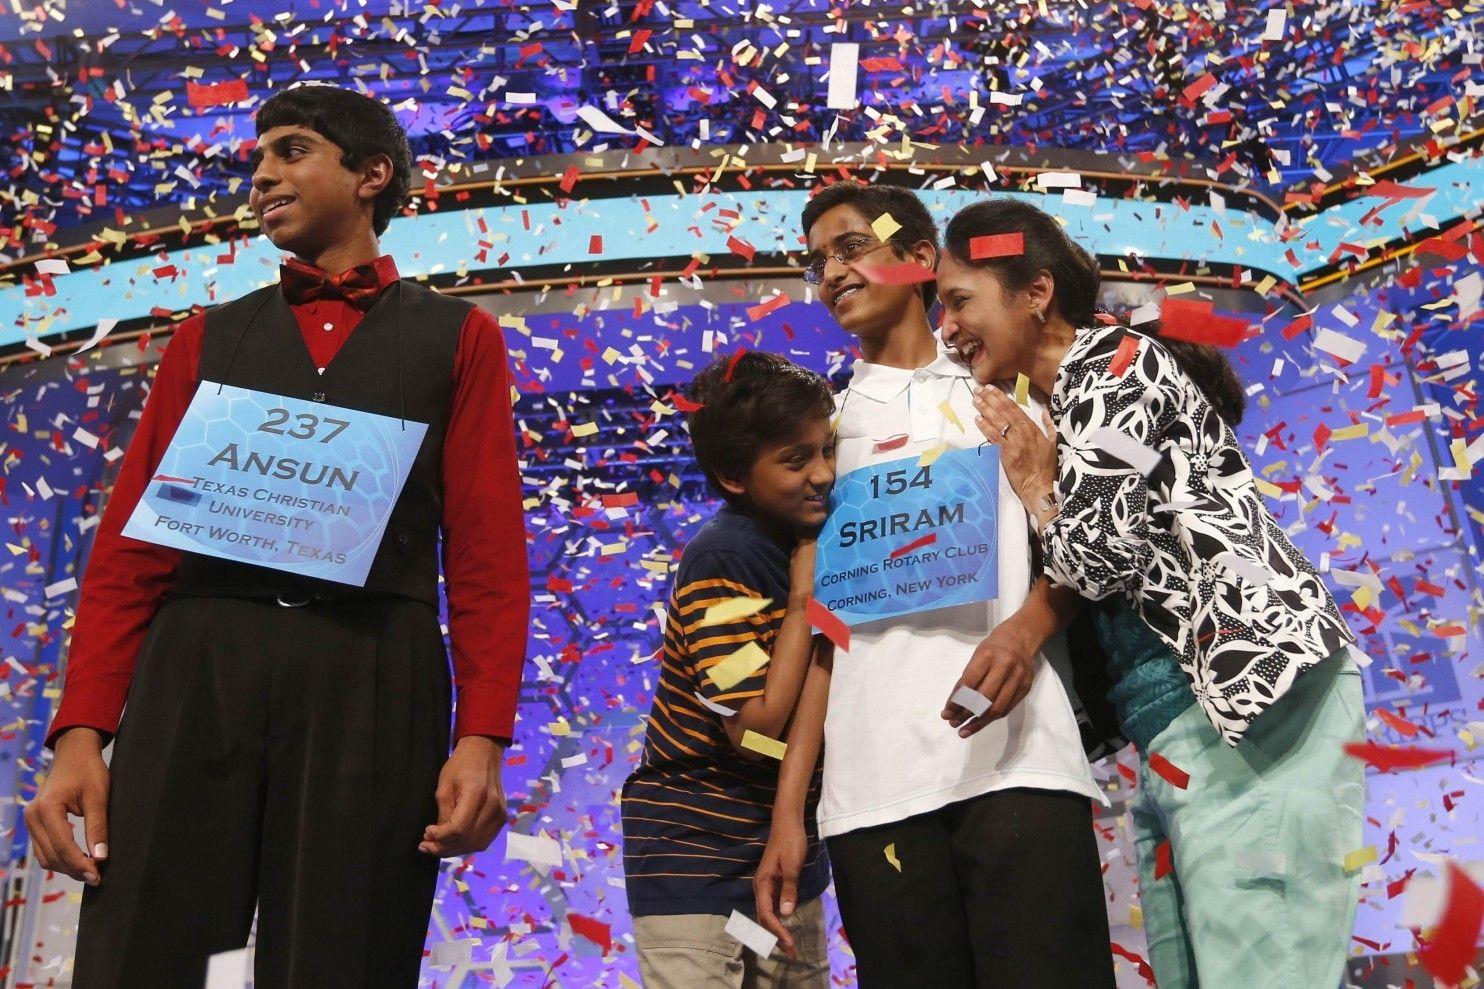 Indian Americans dominate the National Spelling Bee. Why should they take abuse on social media for it? - The Washington Post